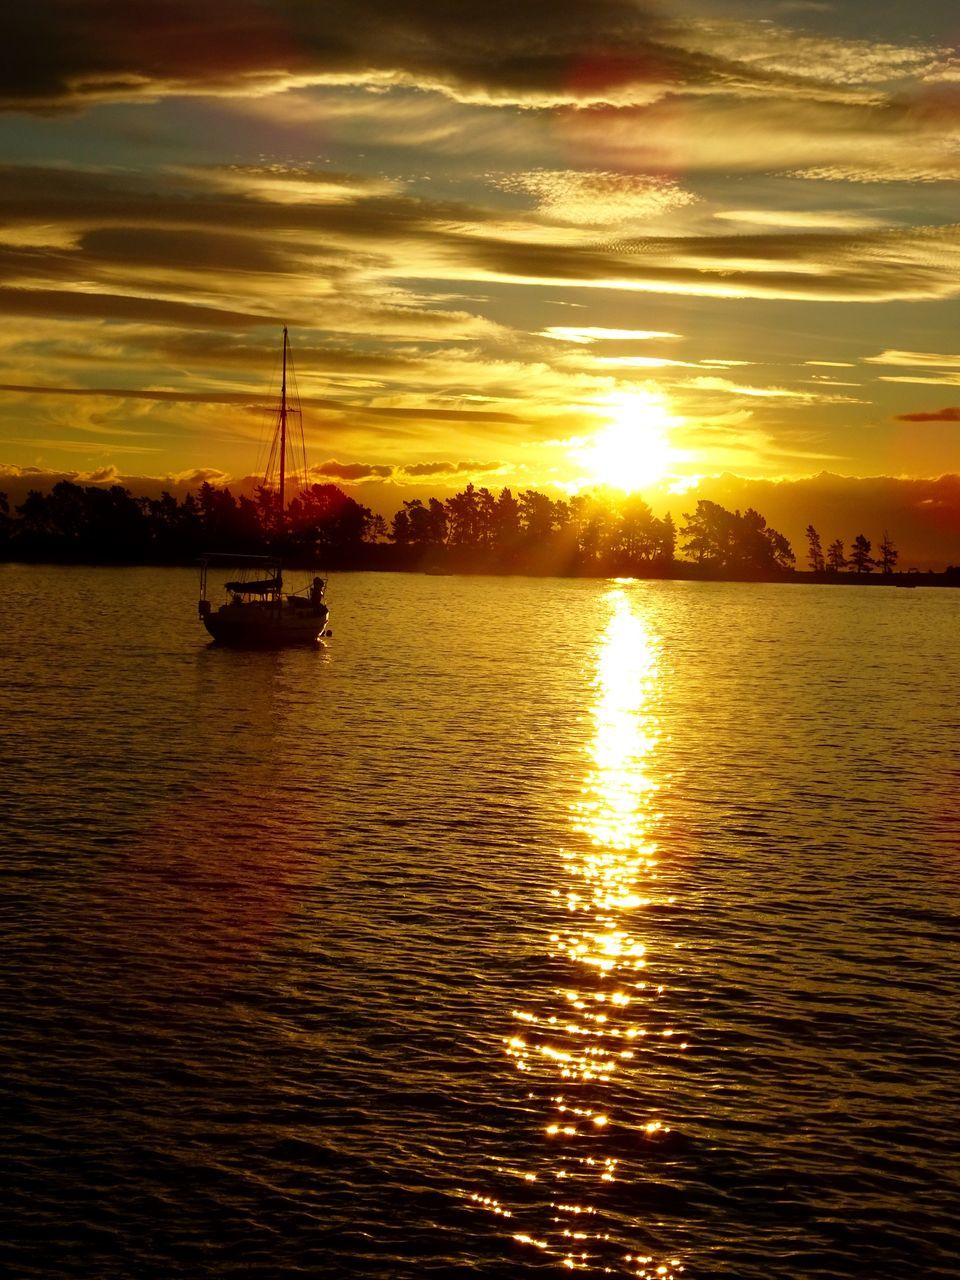 sunset, water, cloud - sky, sky, nautical vessel, orange color, waterfront, nature, beauty in nature, reflection, dramatic sky, silhouette, tranquility, scenics, tranquil scene, sea, transportation, mode of transport, sun, rippled, no people, outdoors, mast